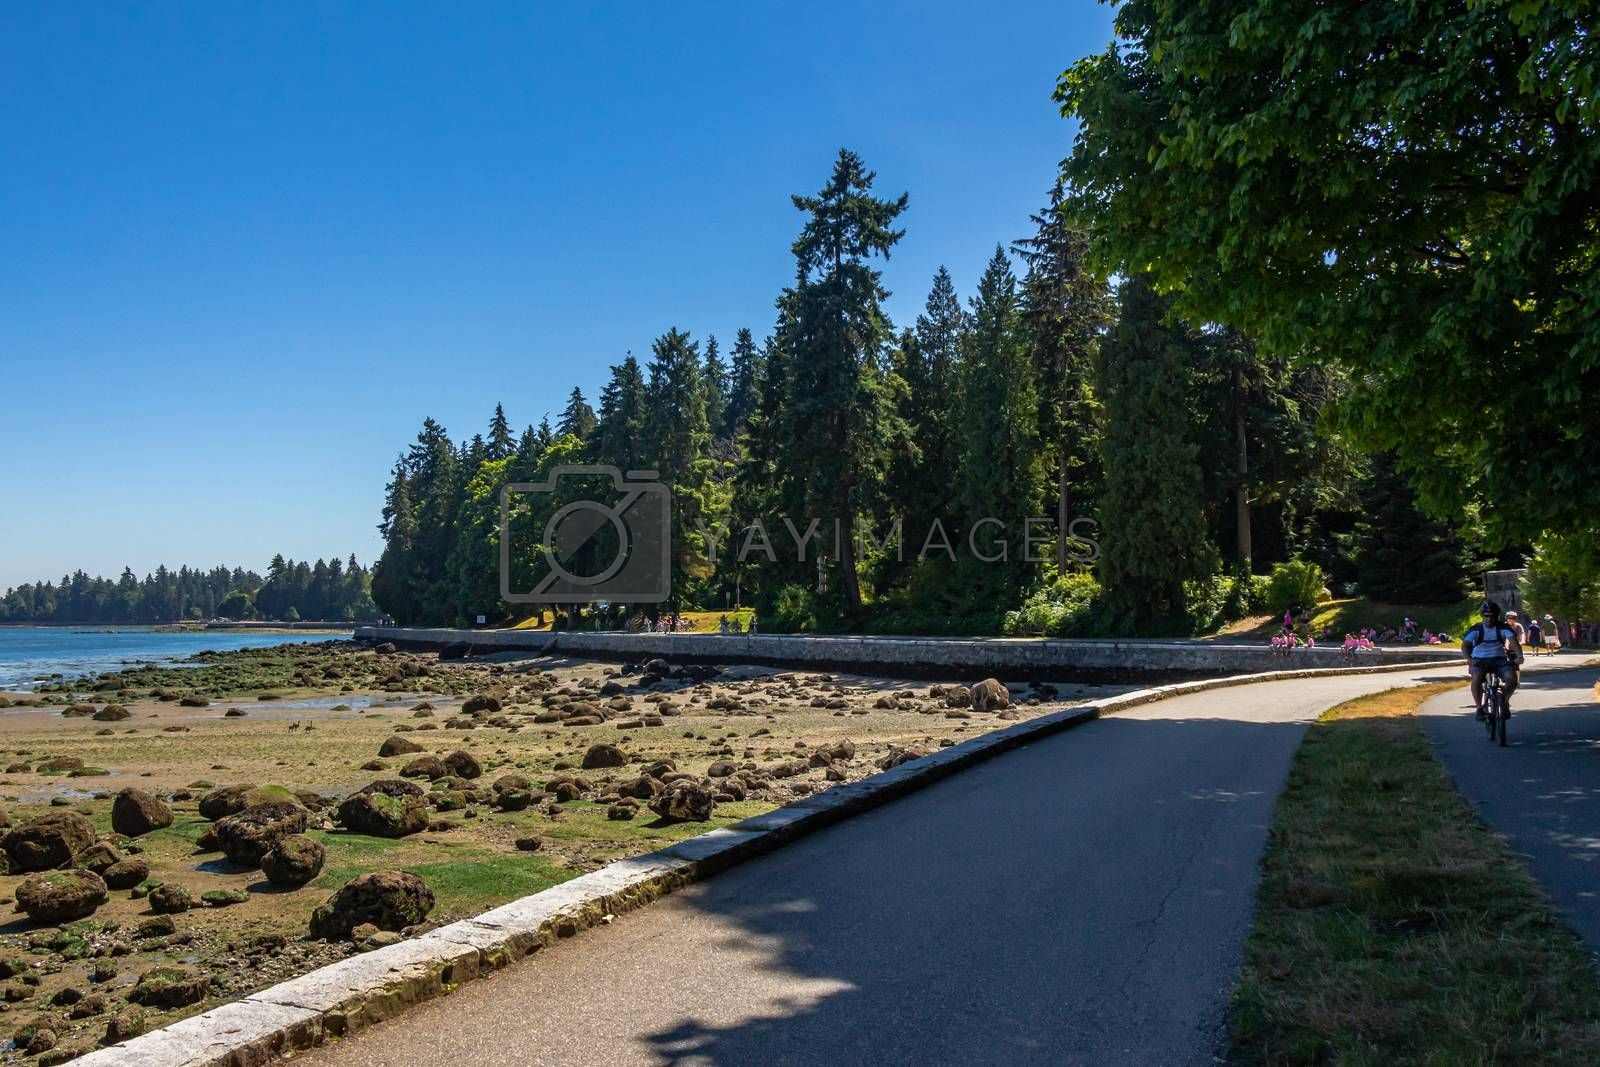 Vancouver, Canada - July 27th 2017: The sea wall in Stanley Park on a summers day at low tide in Coal Harbour, Vancouver